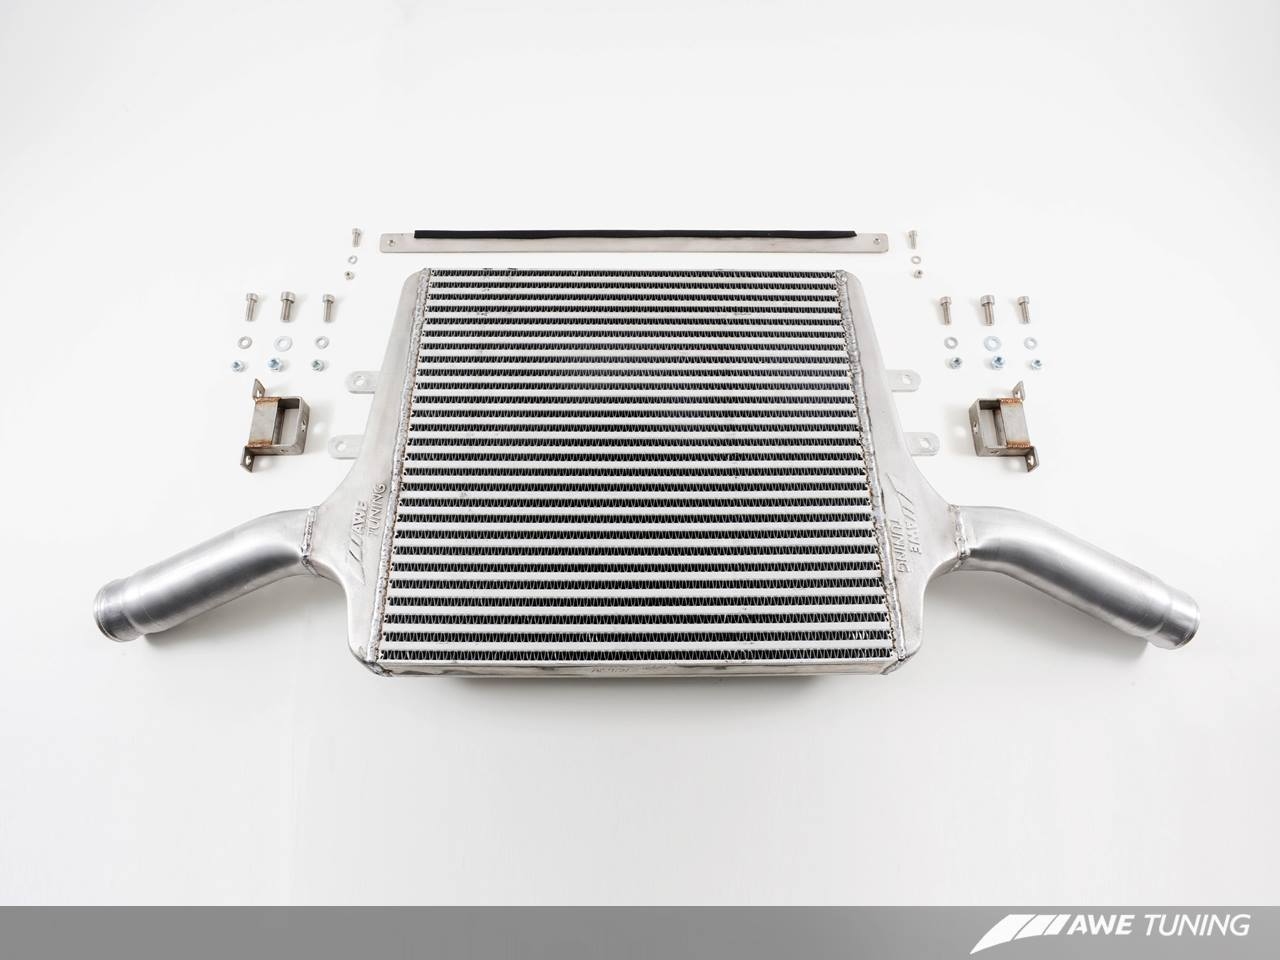 AWE Tuning 2.0T Front Mount Intercooler